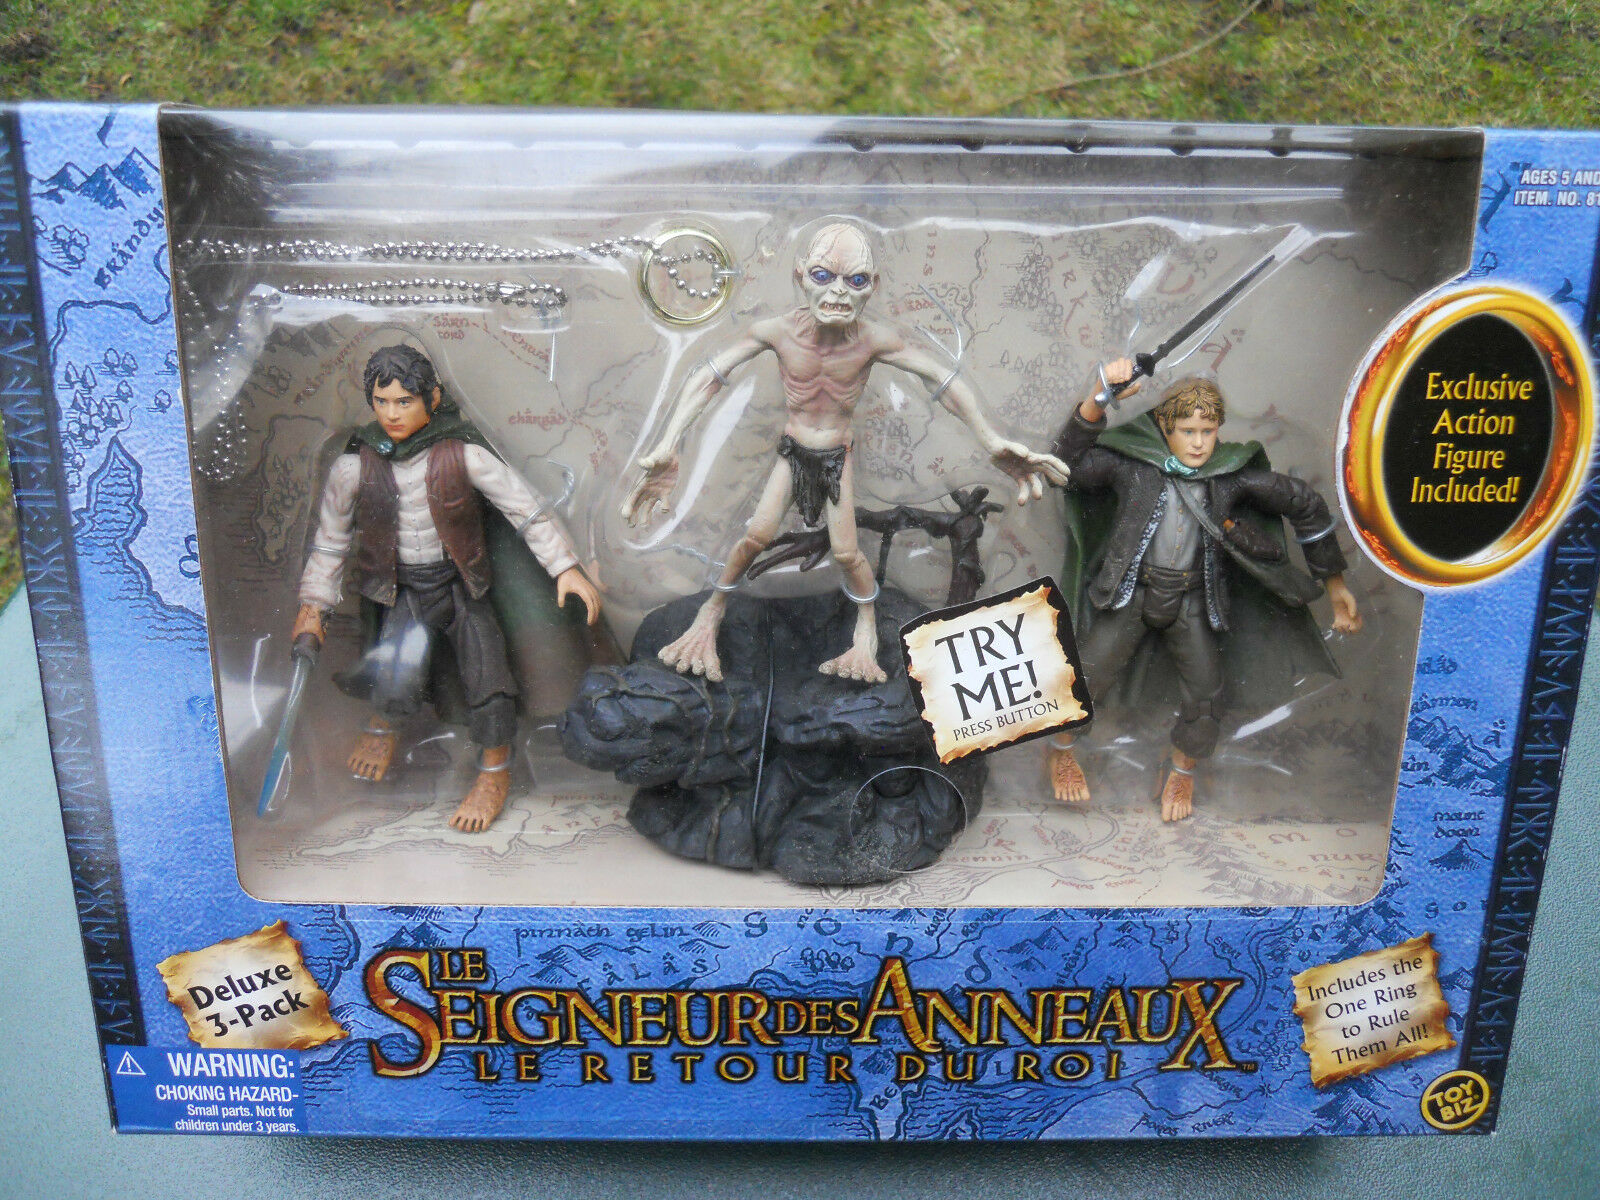 LORD OF THE RINGS THE RETOUR OF THE KING BOXSET 3 FIGURINES FRODO, GOLLUM, SAM